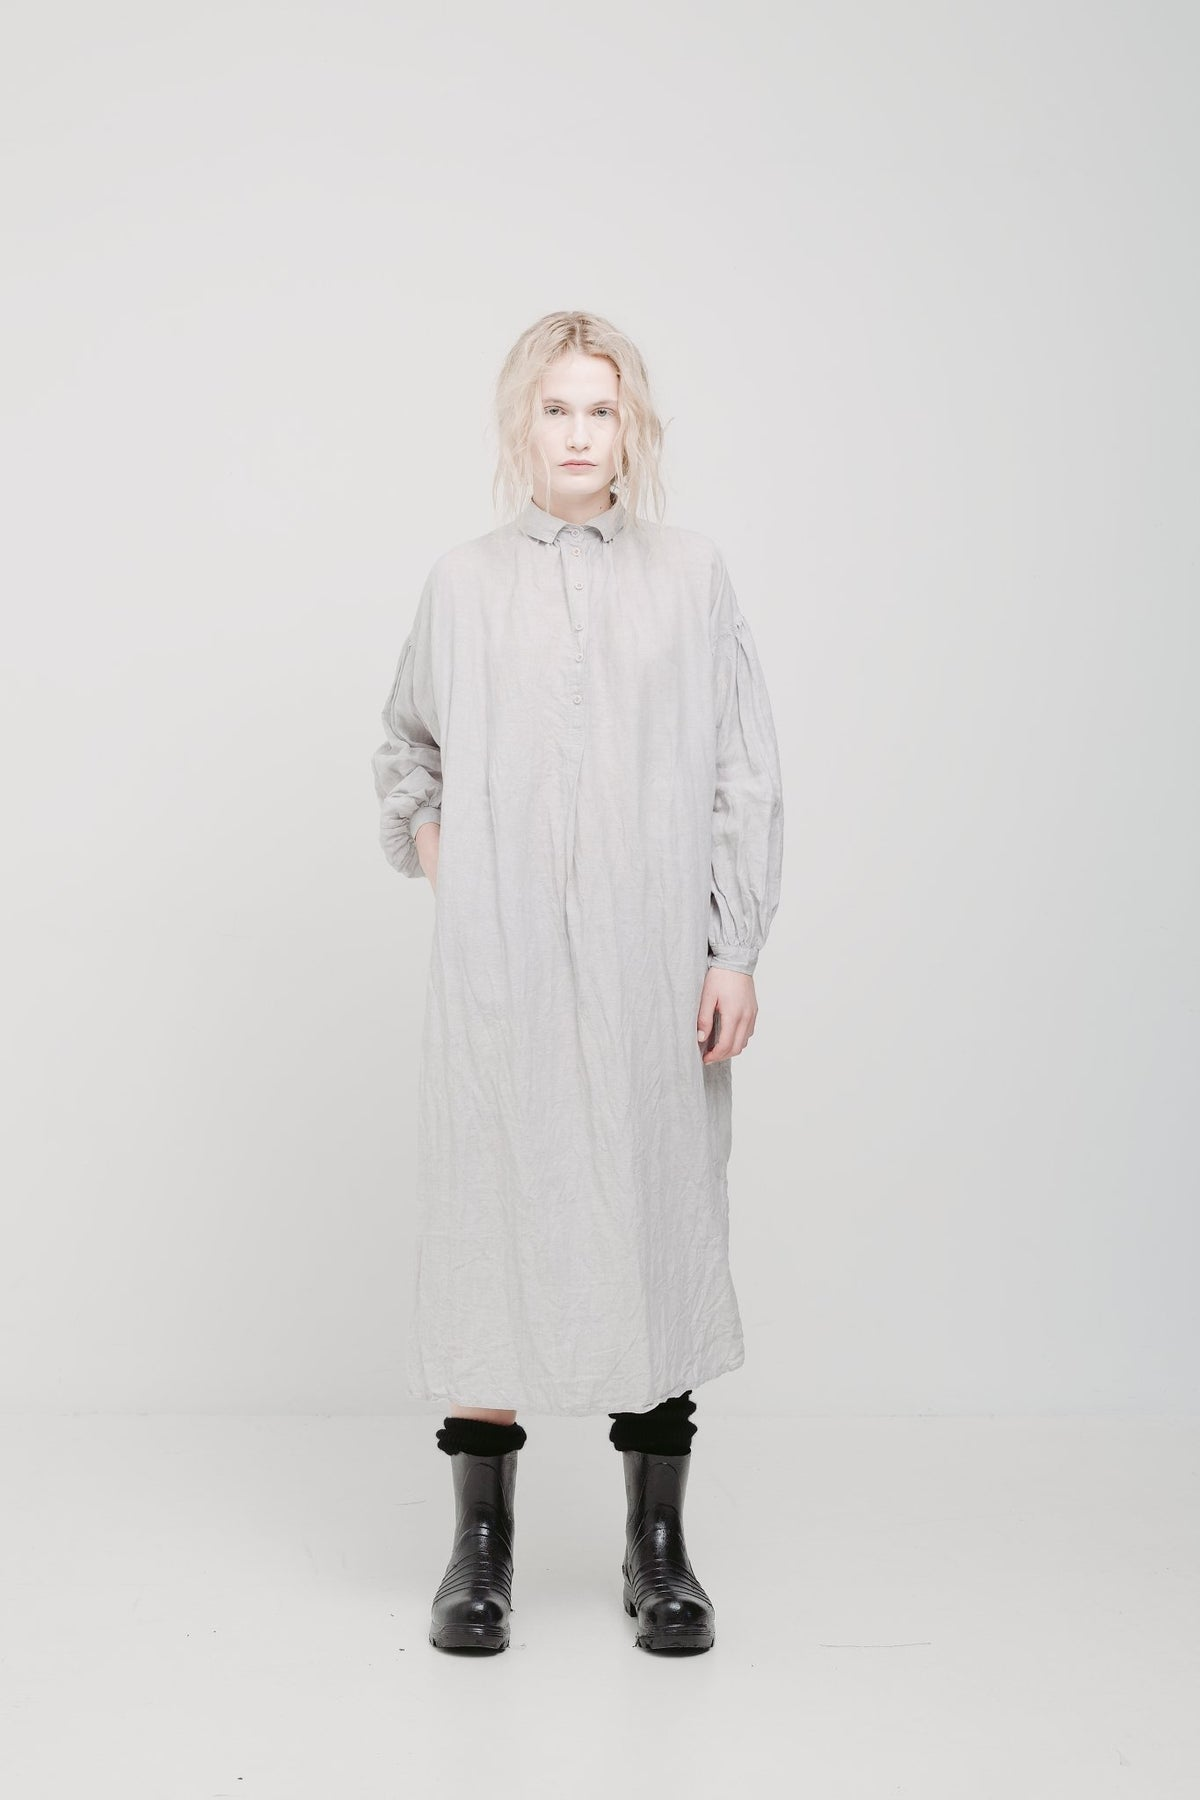 lela jacobs still thobe shirt dress linen in black and smoke k road fashion designers stockists Auckland New Zealand Made